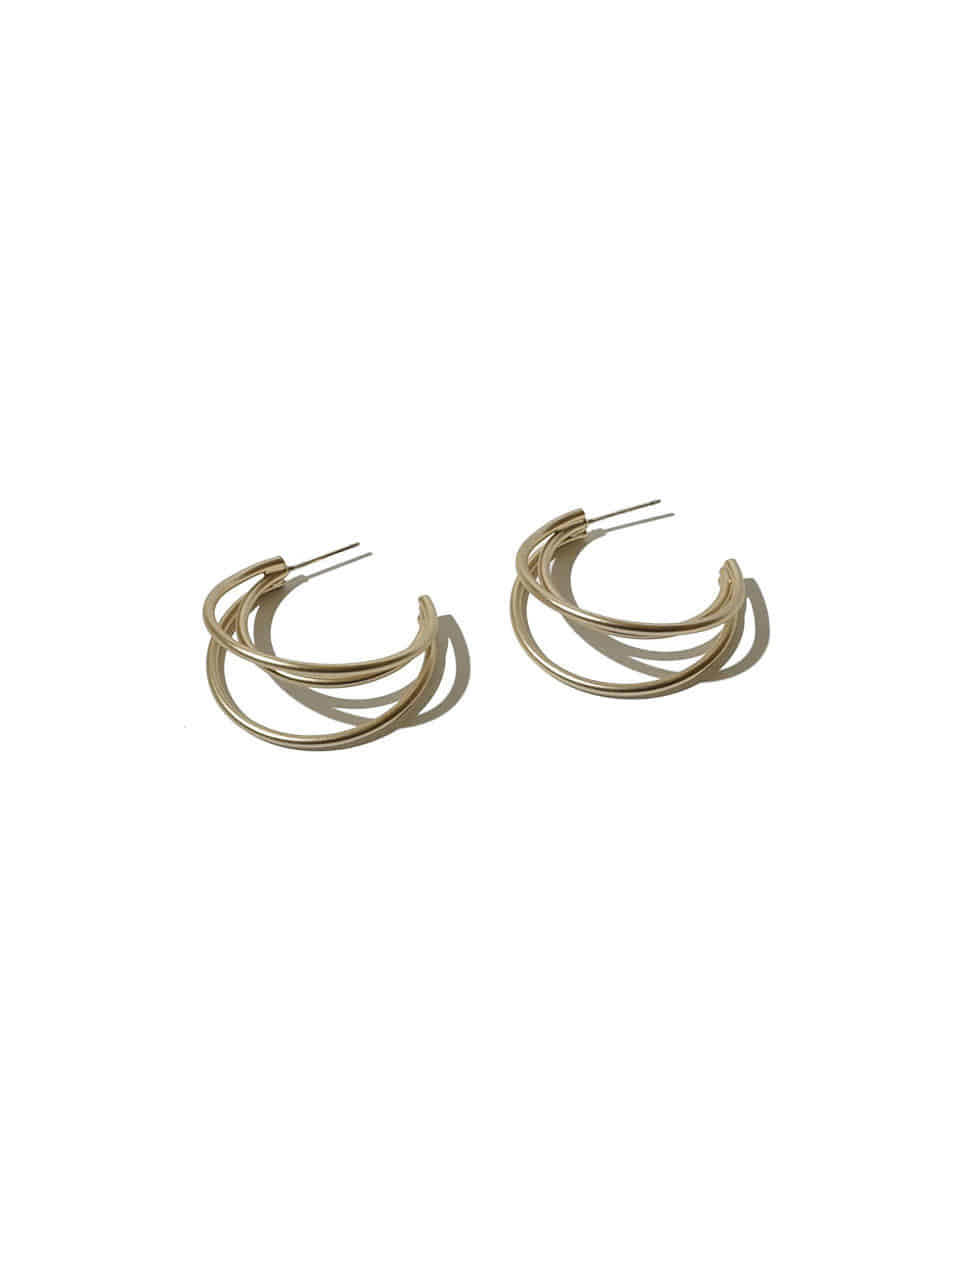 3curve ring earrings